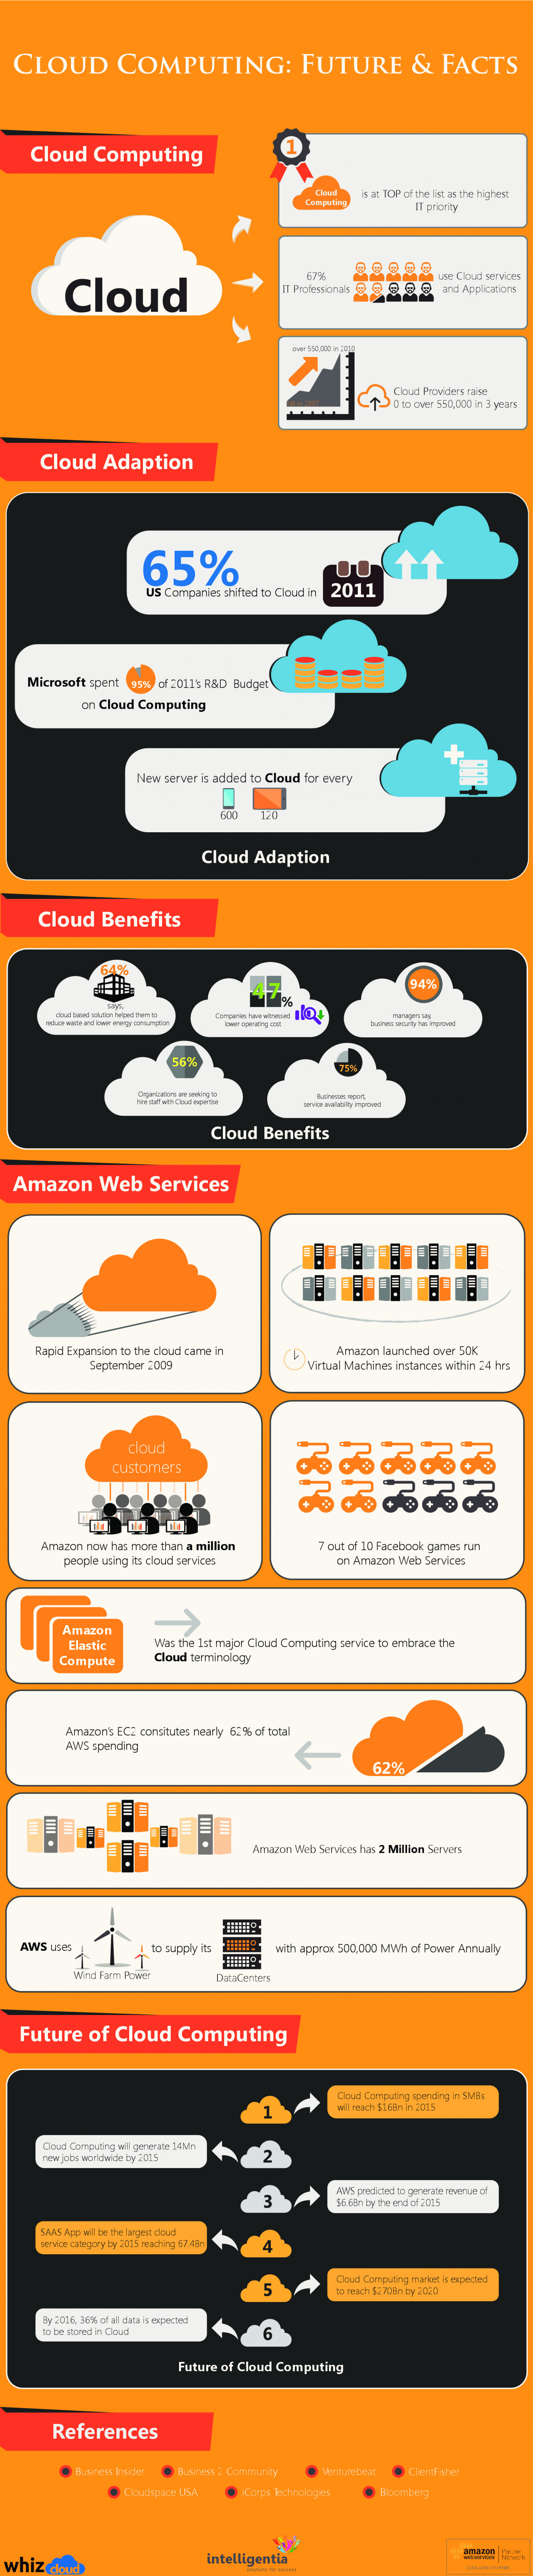 Cloud Computing Future And Facts Infographic